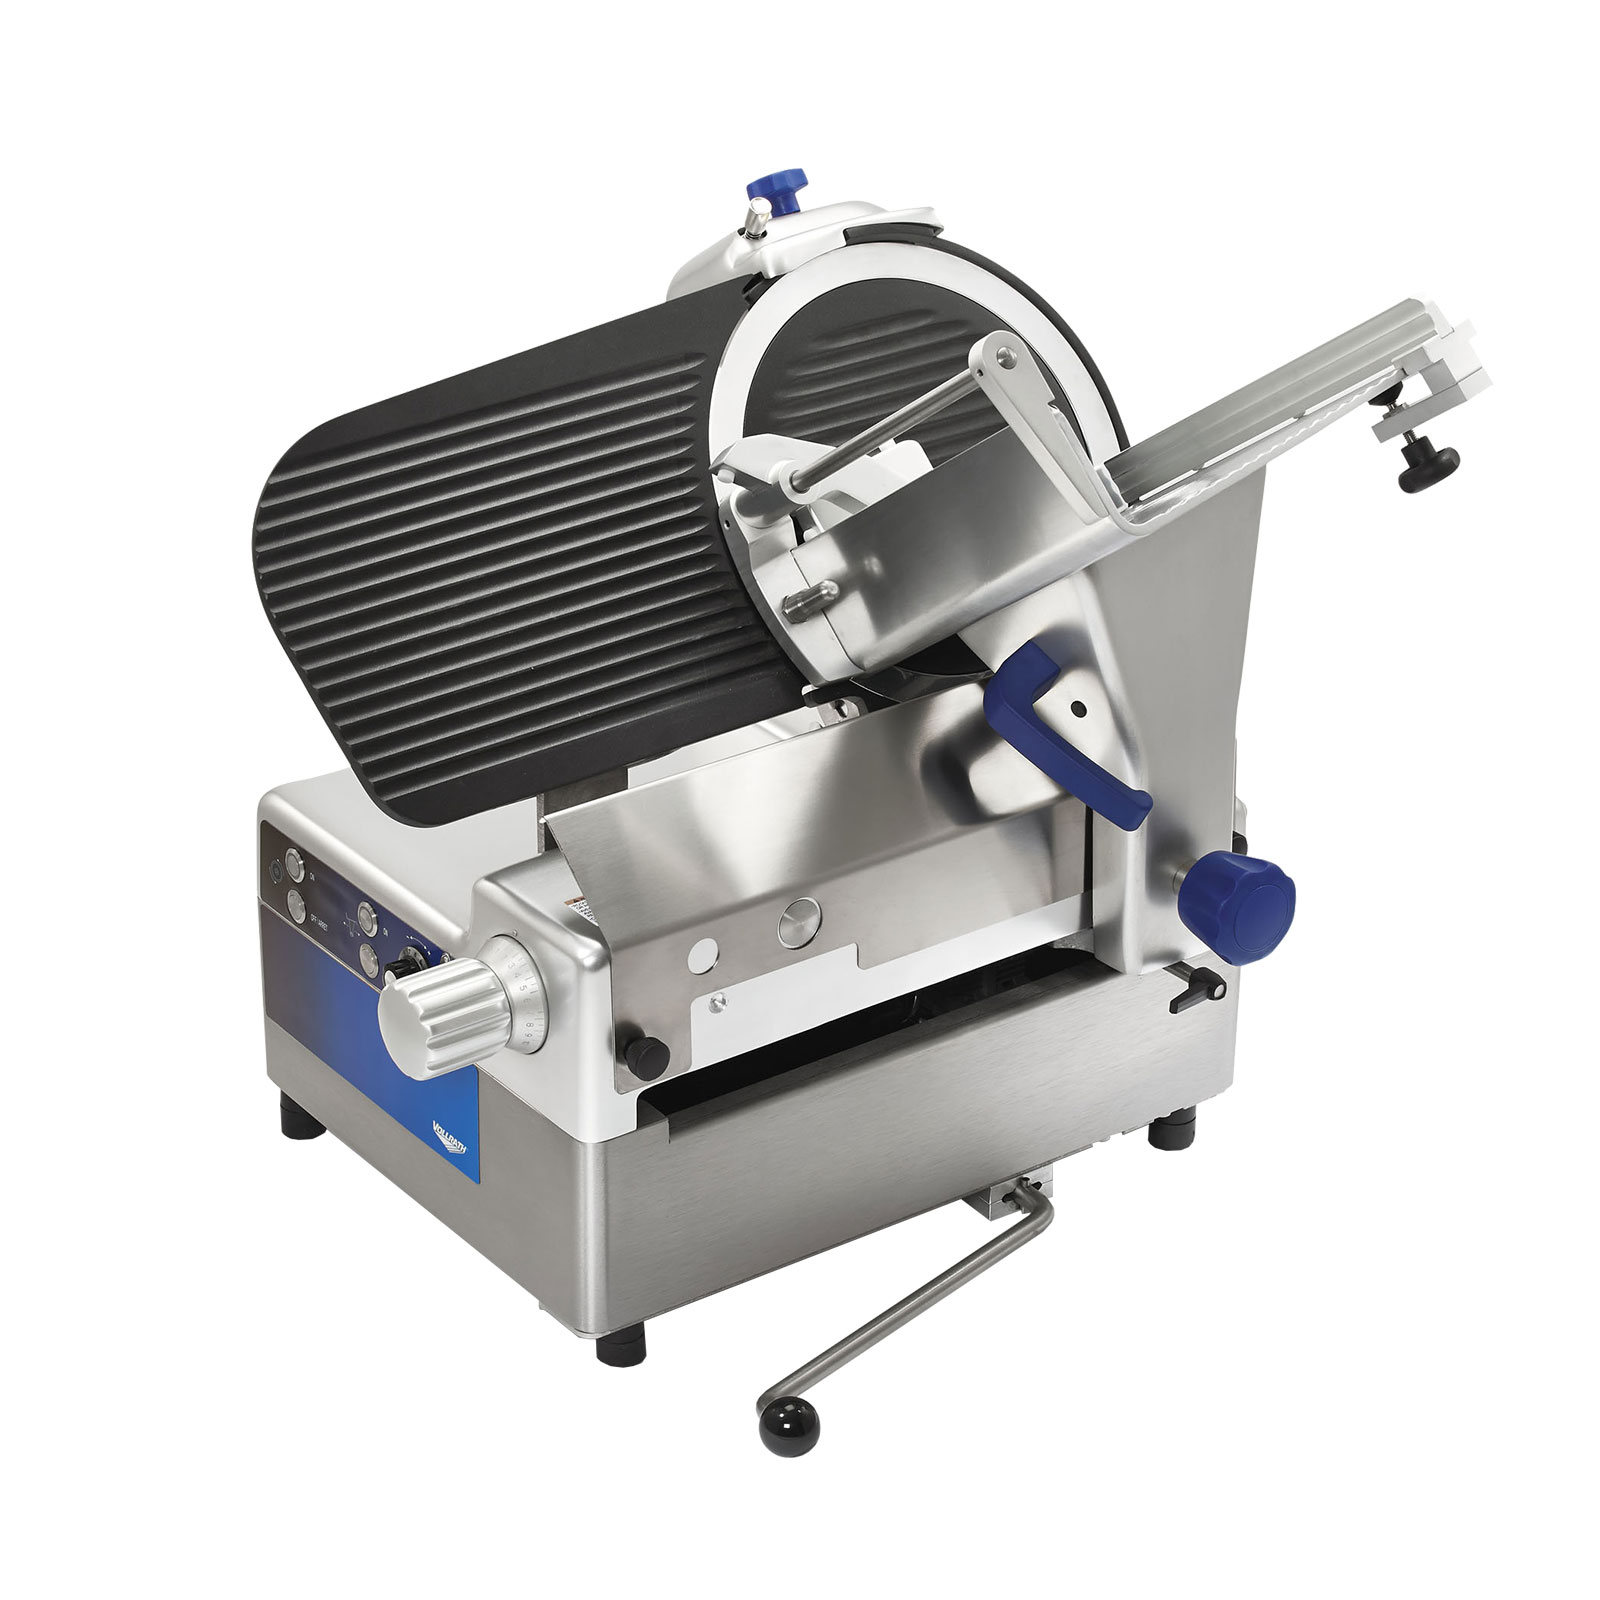 Vollrath 40954 food slicer, electric